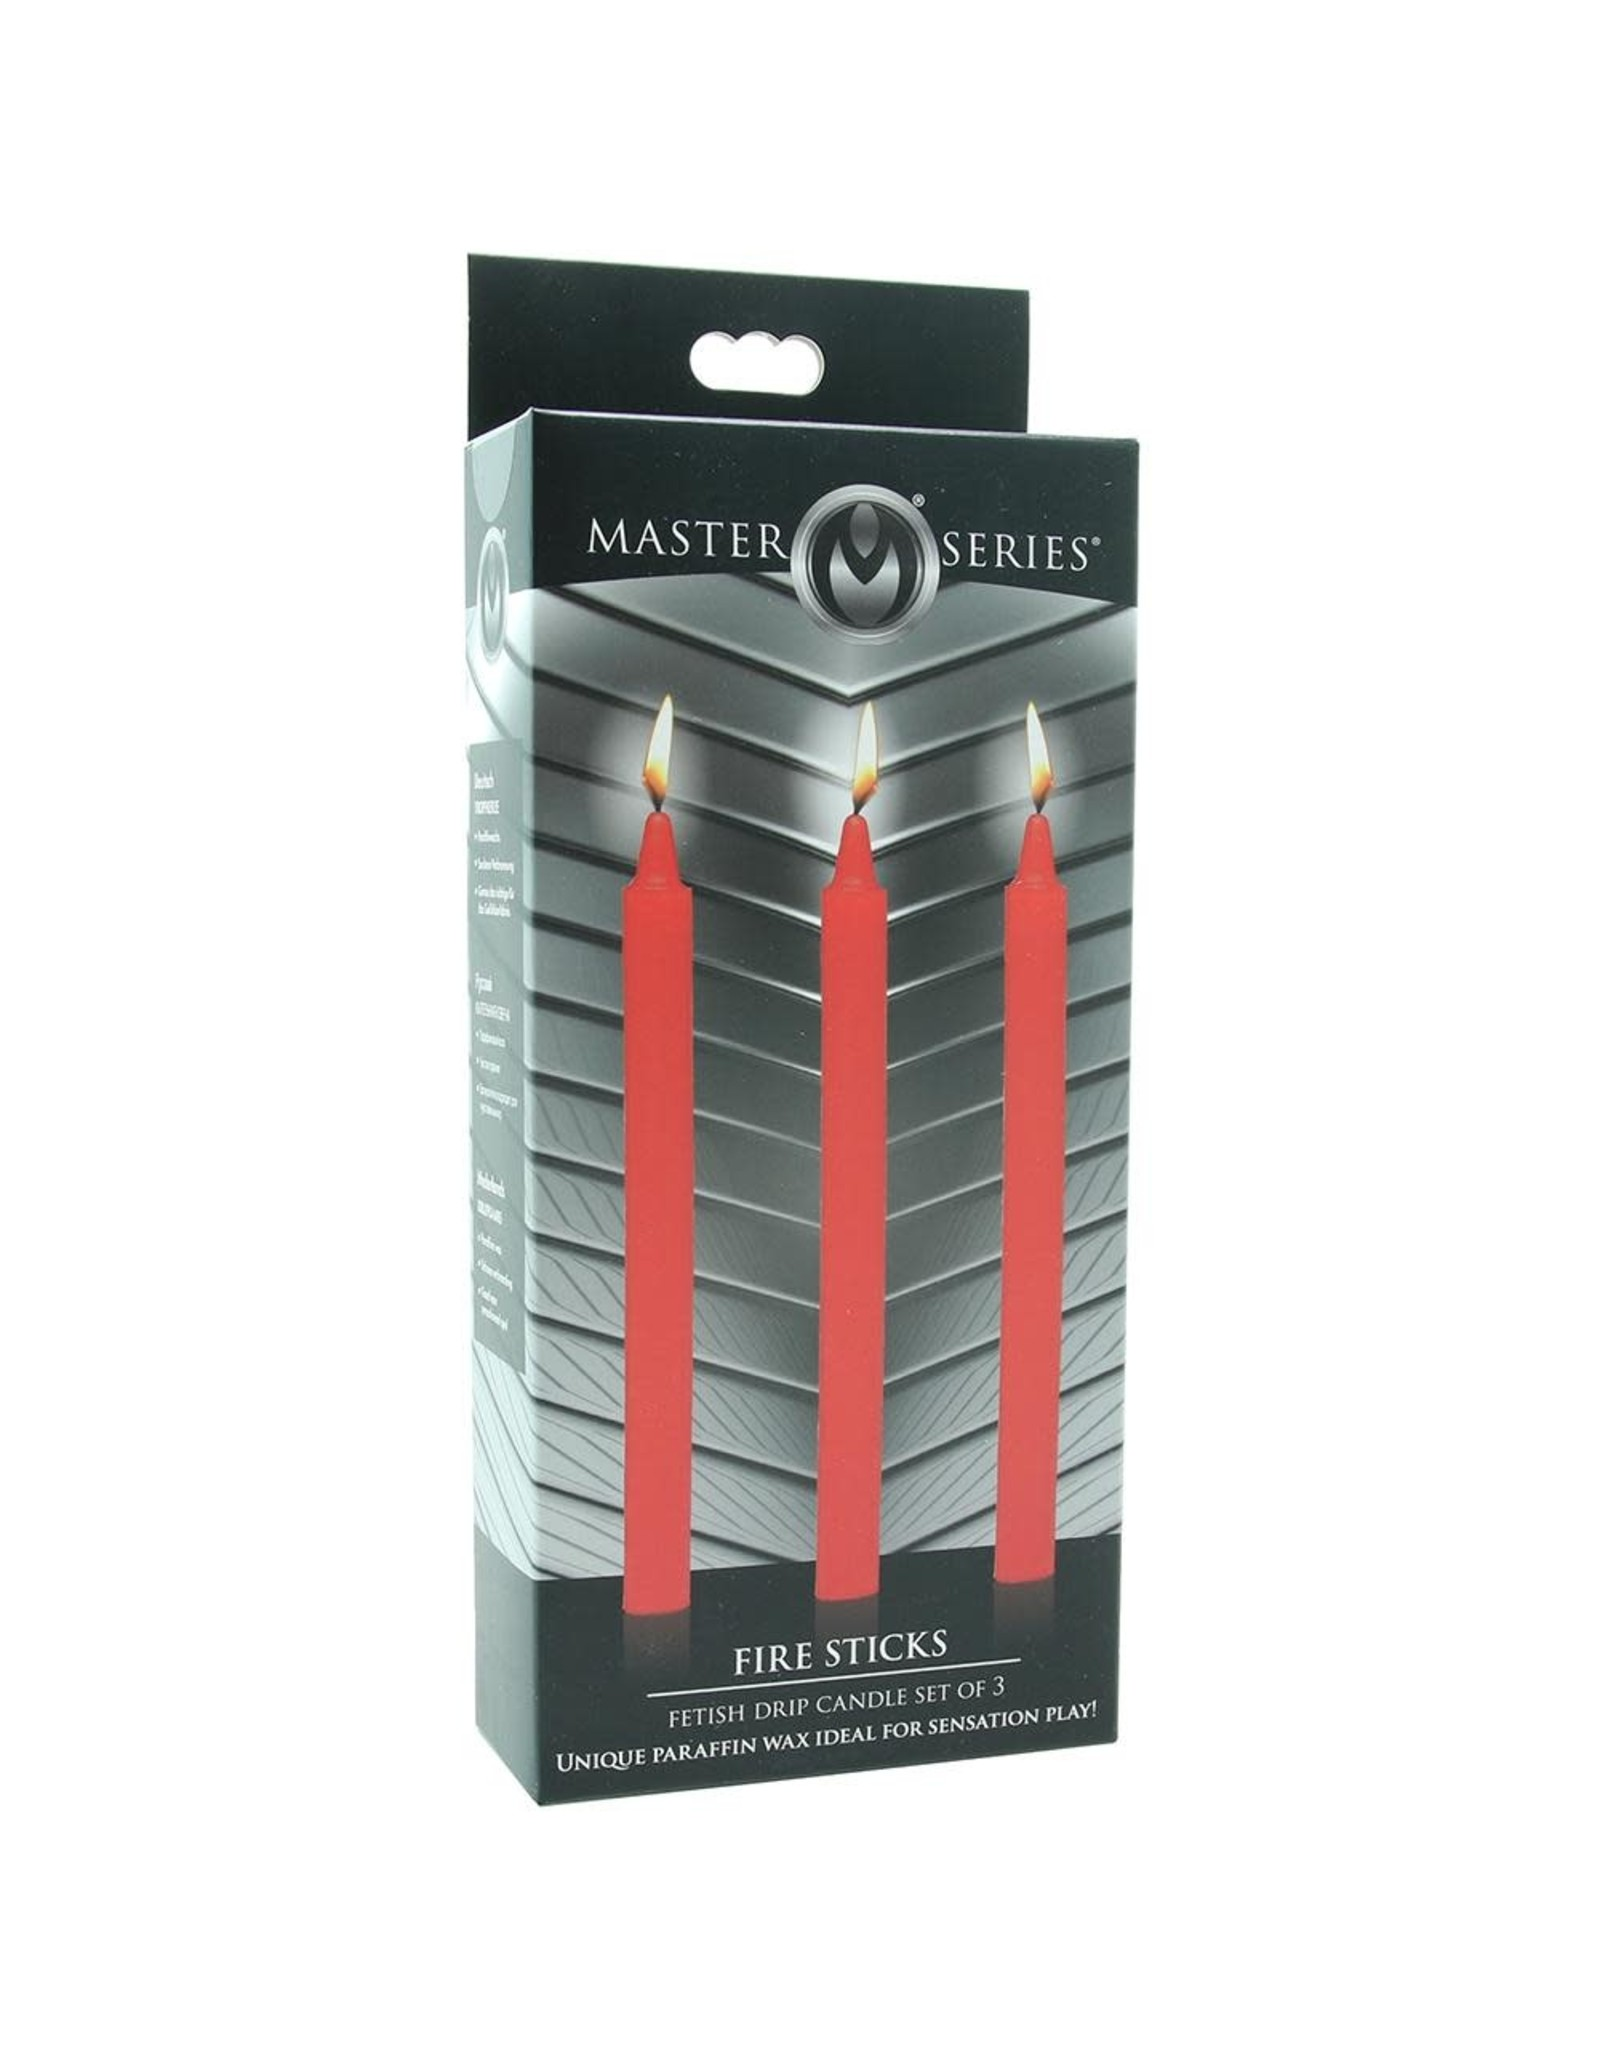 MASTER SERIES MASTER SERIES - FIRE STICKS DRIP CANDLE SET OF 3